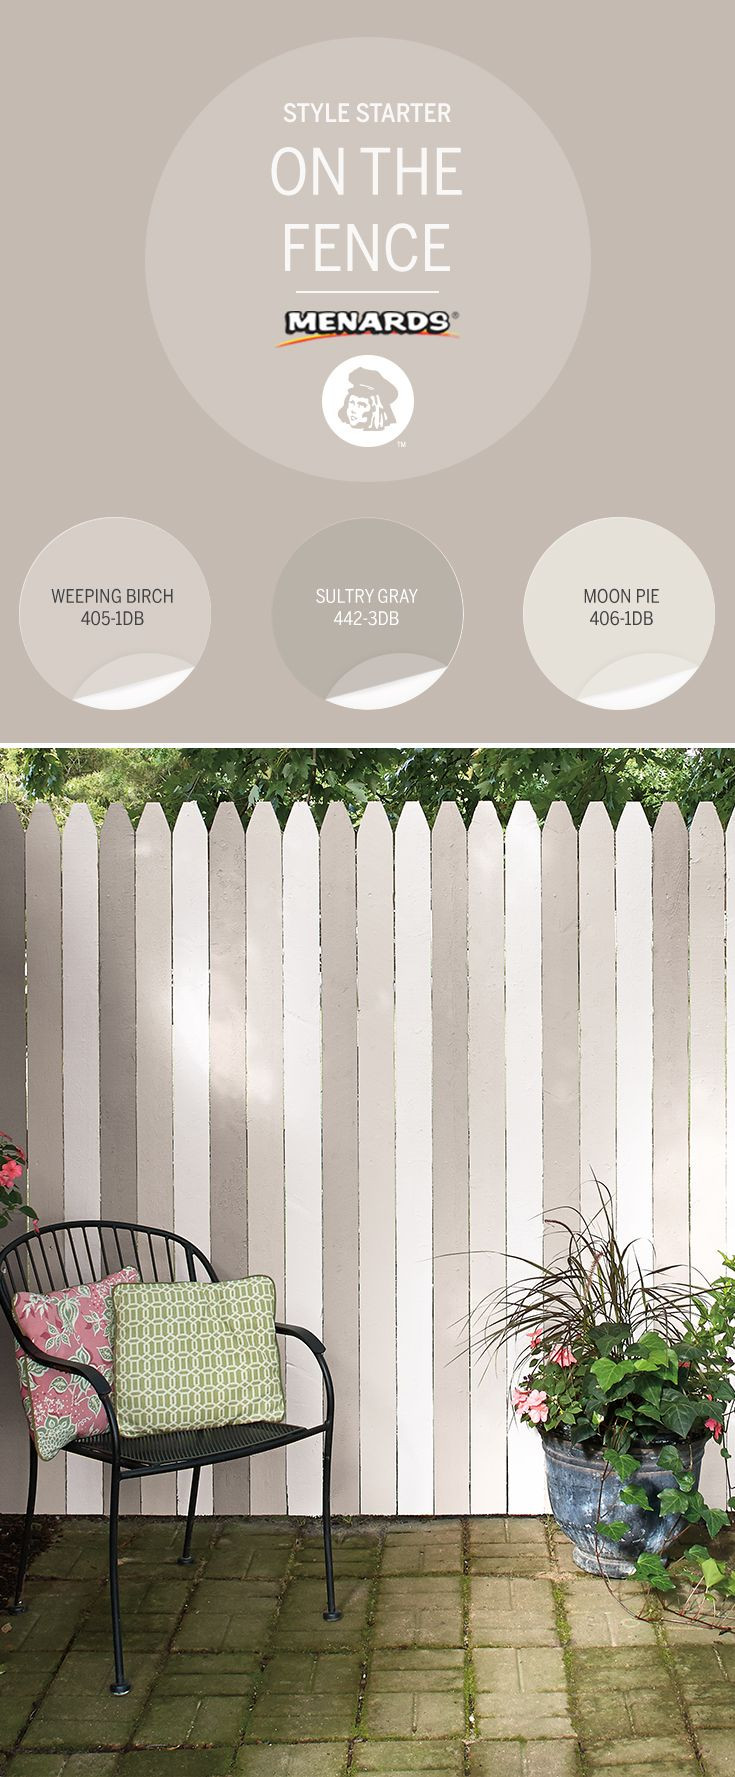 Best ideas about Menards Paint Colors . Save or Pin 25 best ideas about Dutch boy paint colors on Pinterest Now.